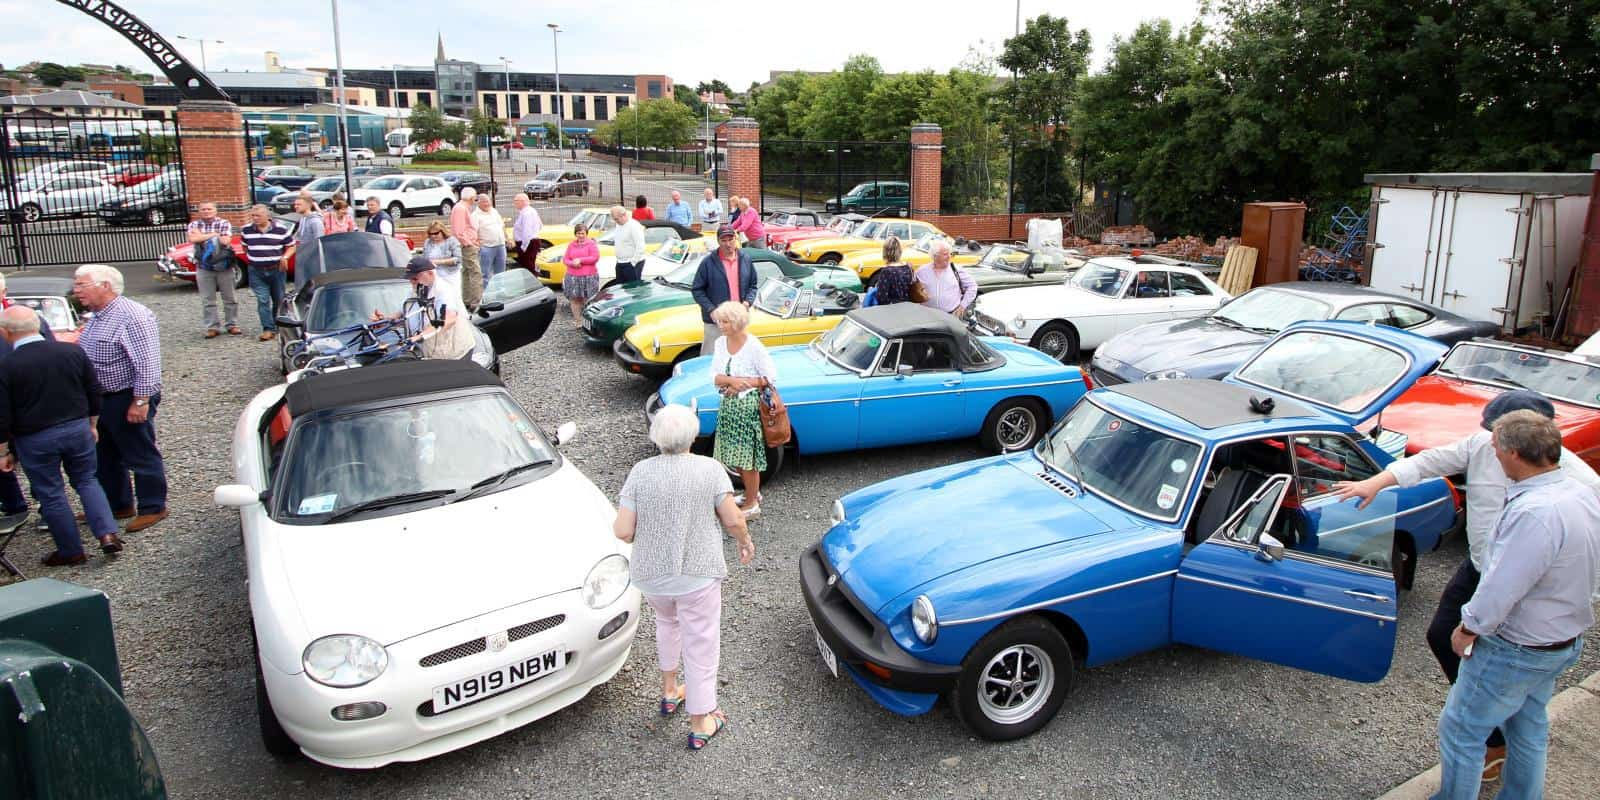 Northern Ireland MG Owners group visiting the railway